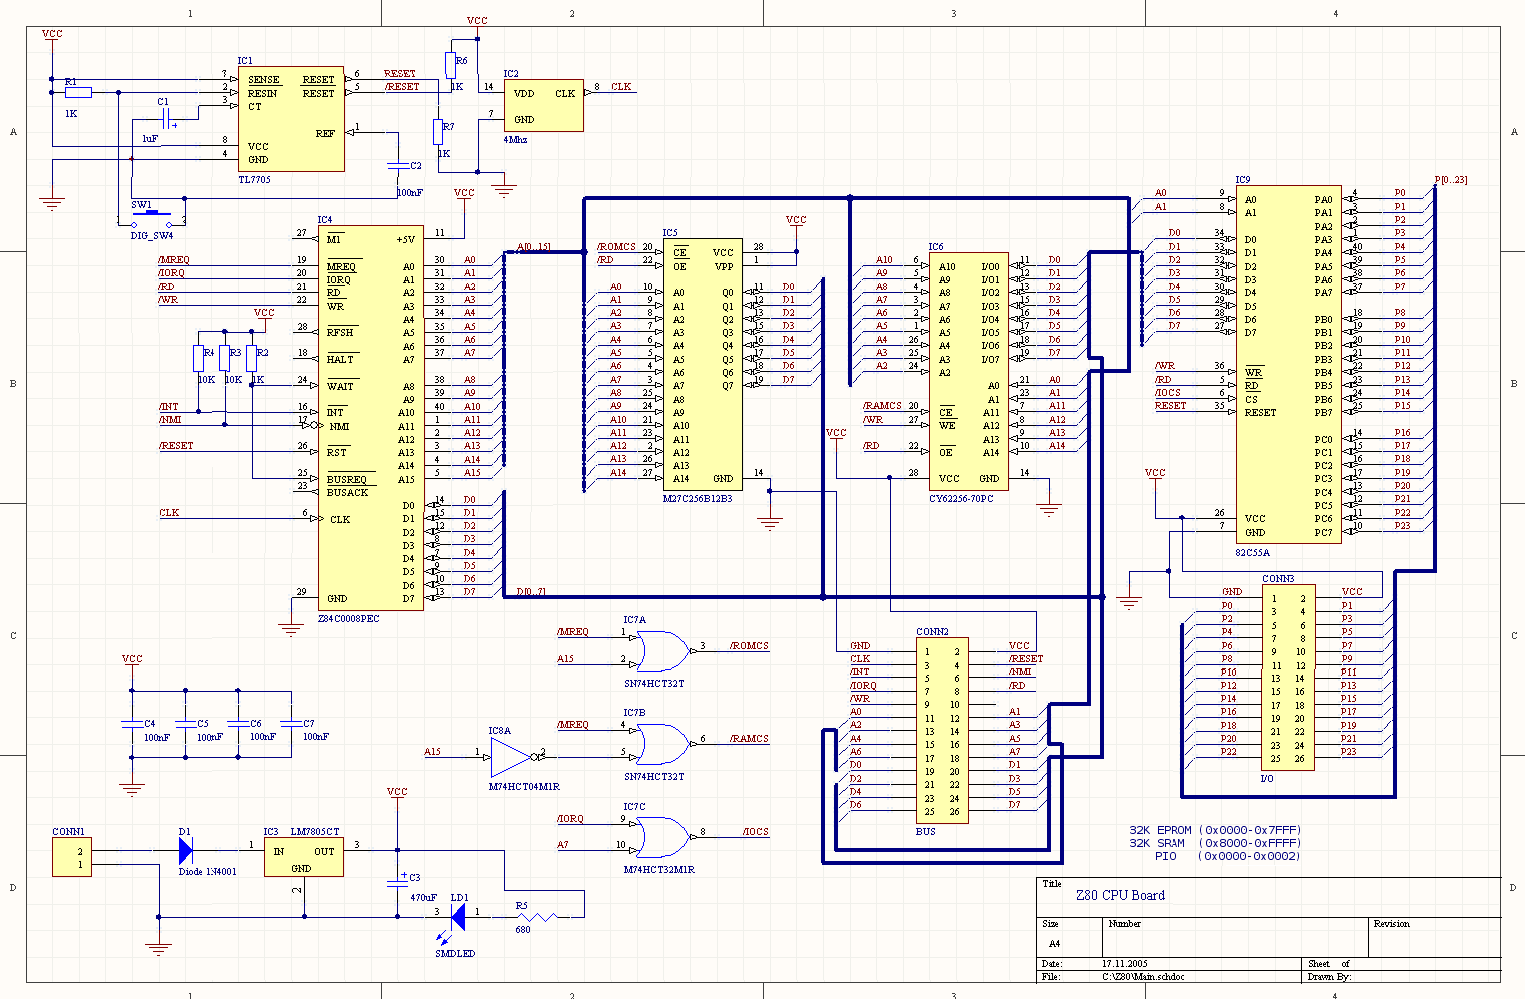 Debugging Stm32f103rb Nucleo Board With With Segger J Link as well Connect Alu To Cpu In Logism Circuit Design And Output To 7 Segment Display as well m Cooling Fan Wiring Diagram as well Clevo as well 2962. on cpu schematic